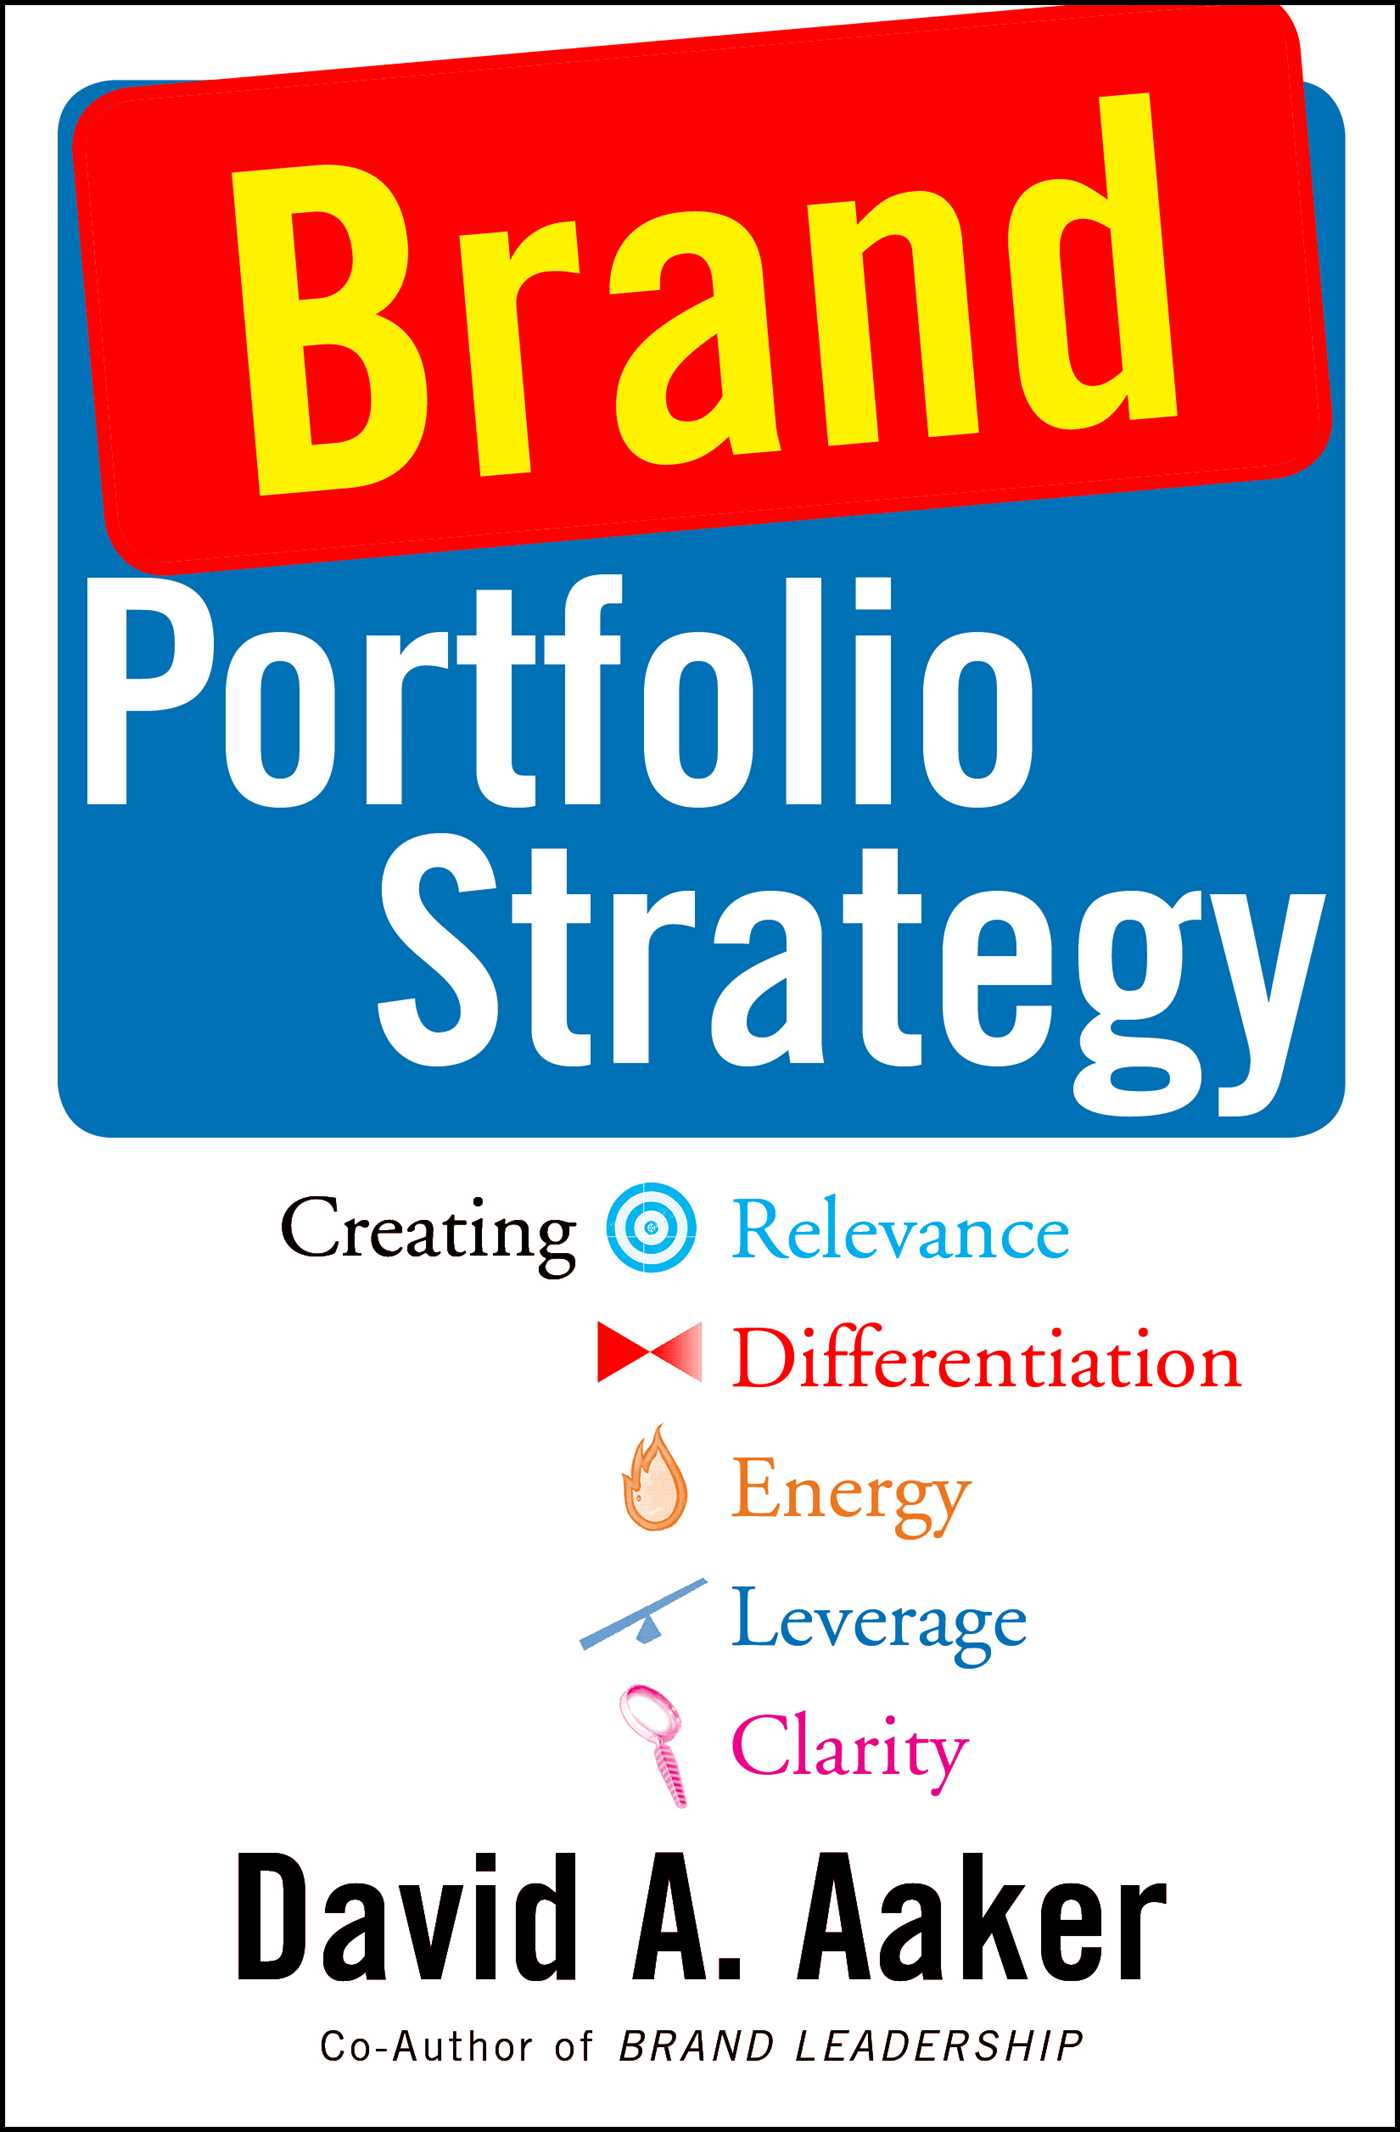 Download Ebook Brand Portfolio Strategy by David A. Aaker Pdf